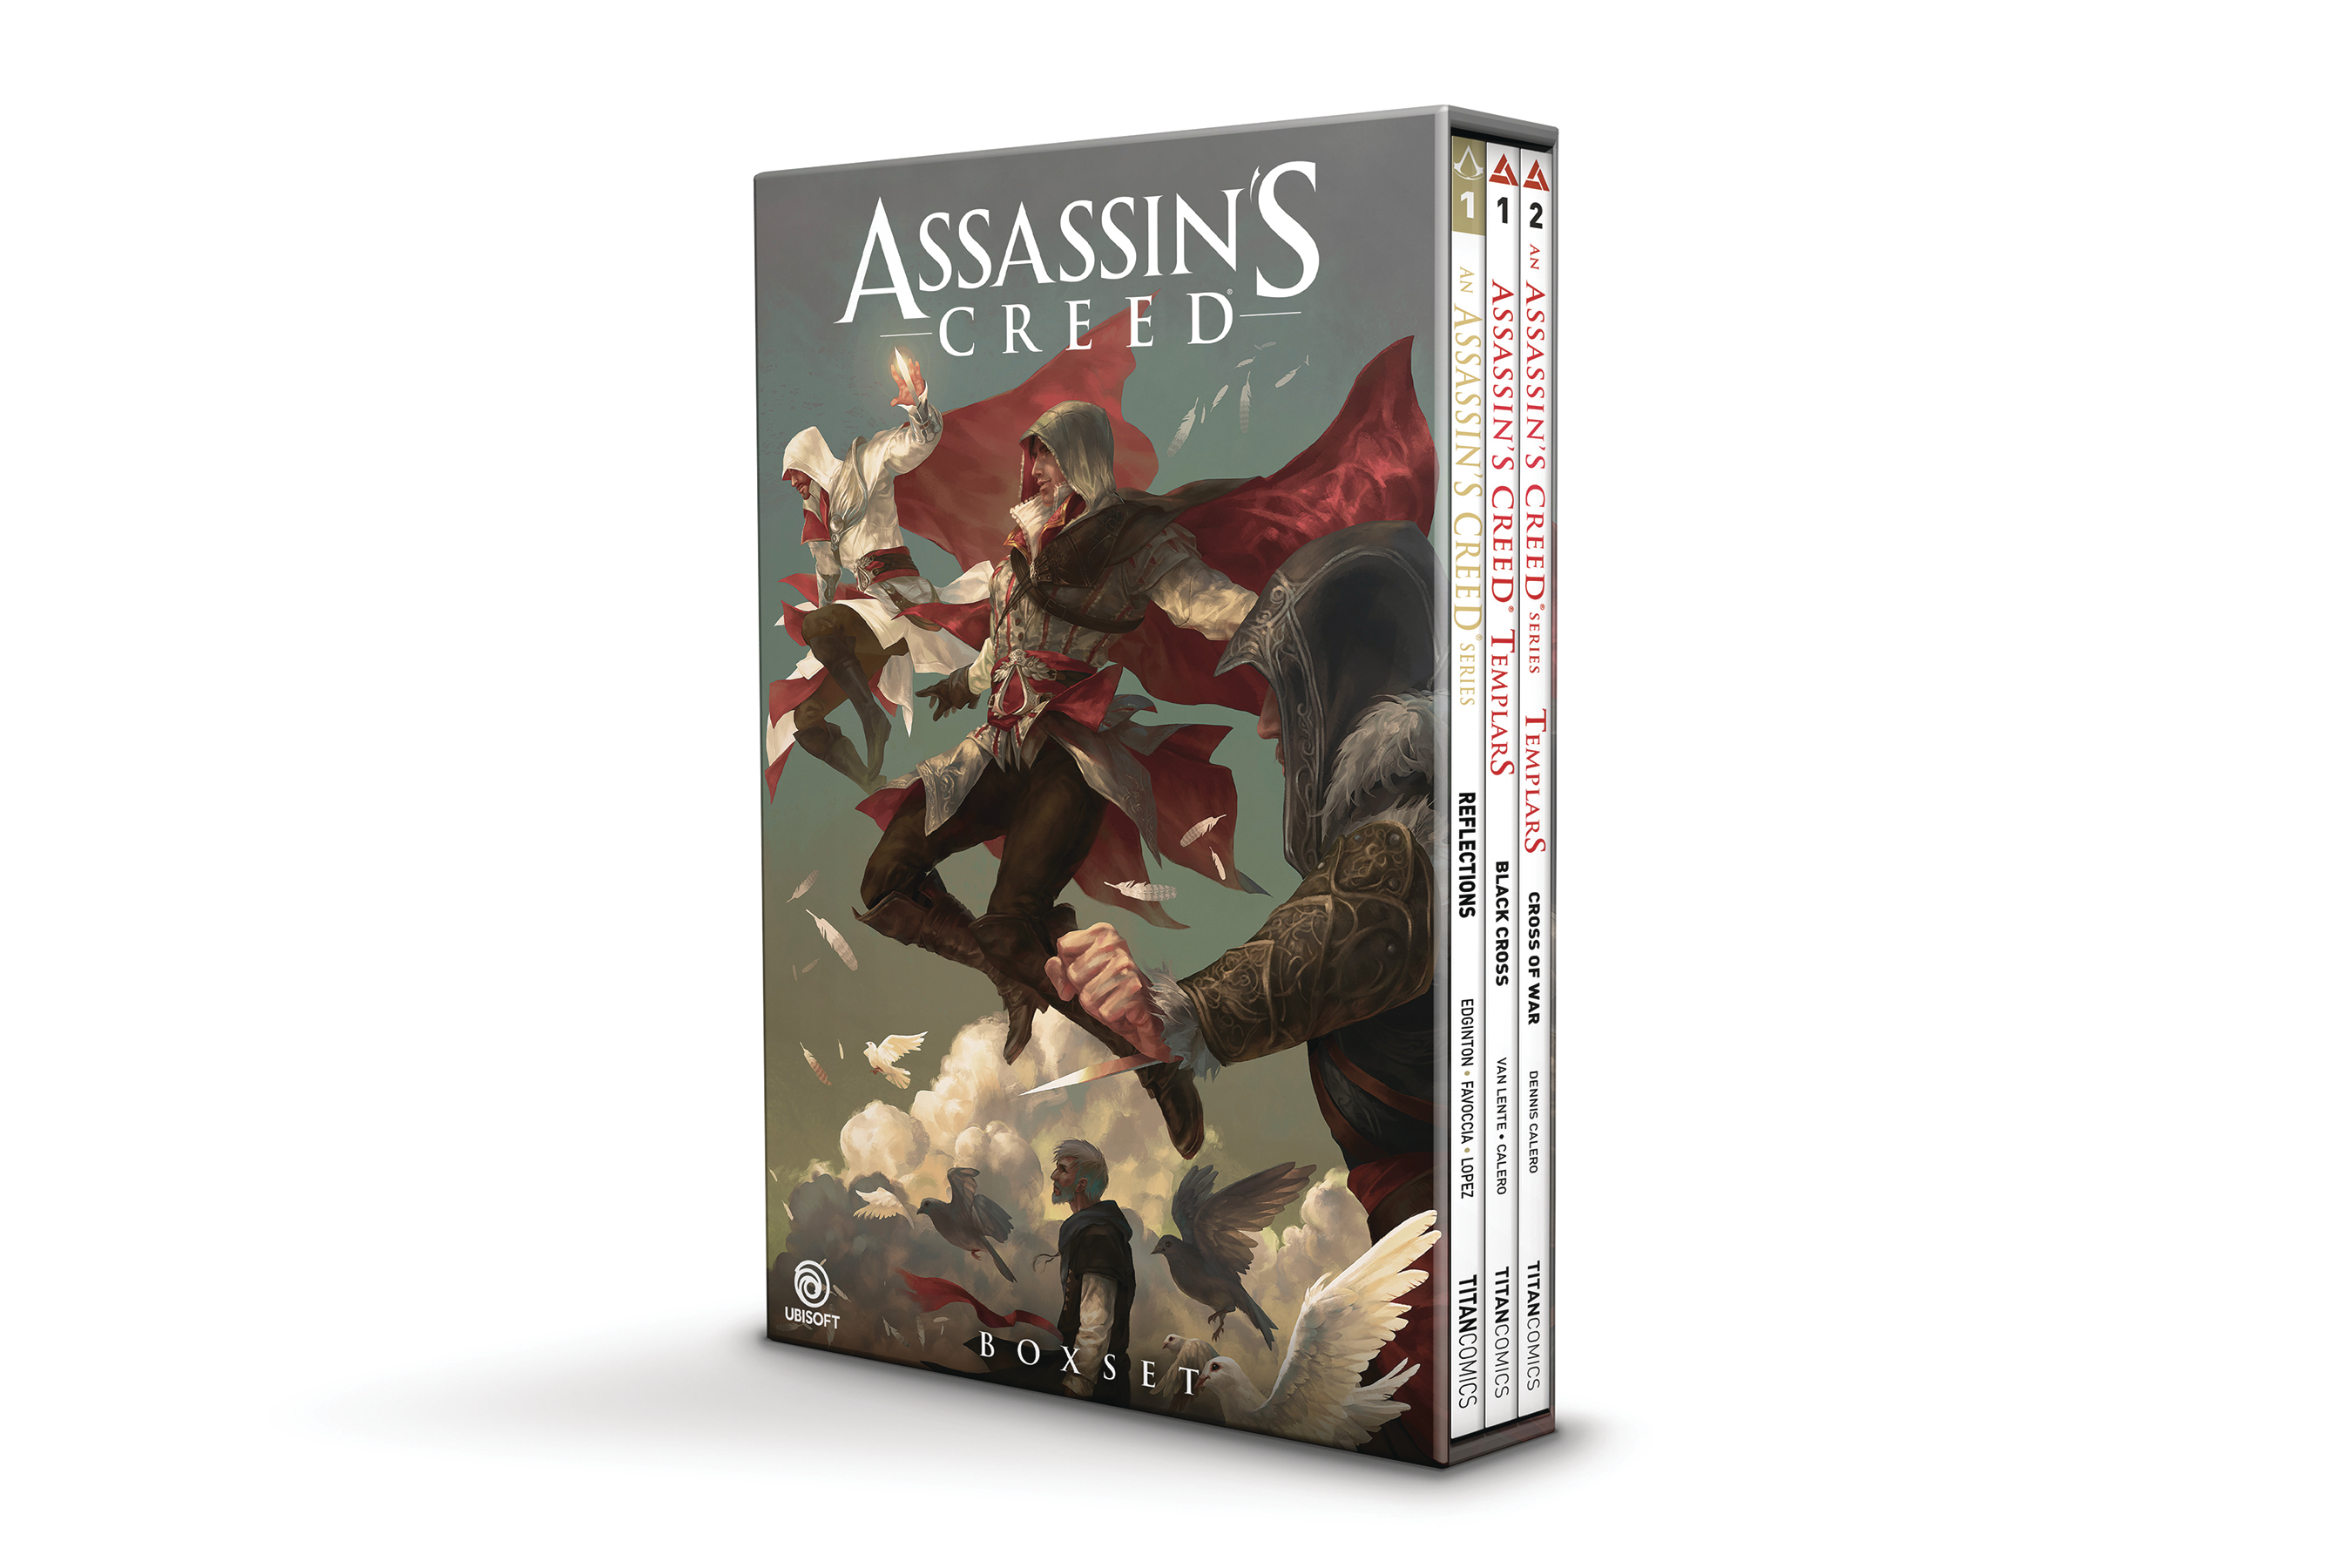 ASSASSINS CREED BOX SET